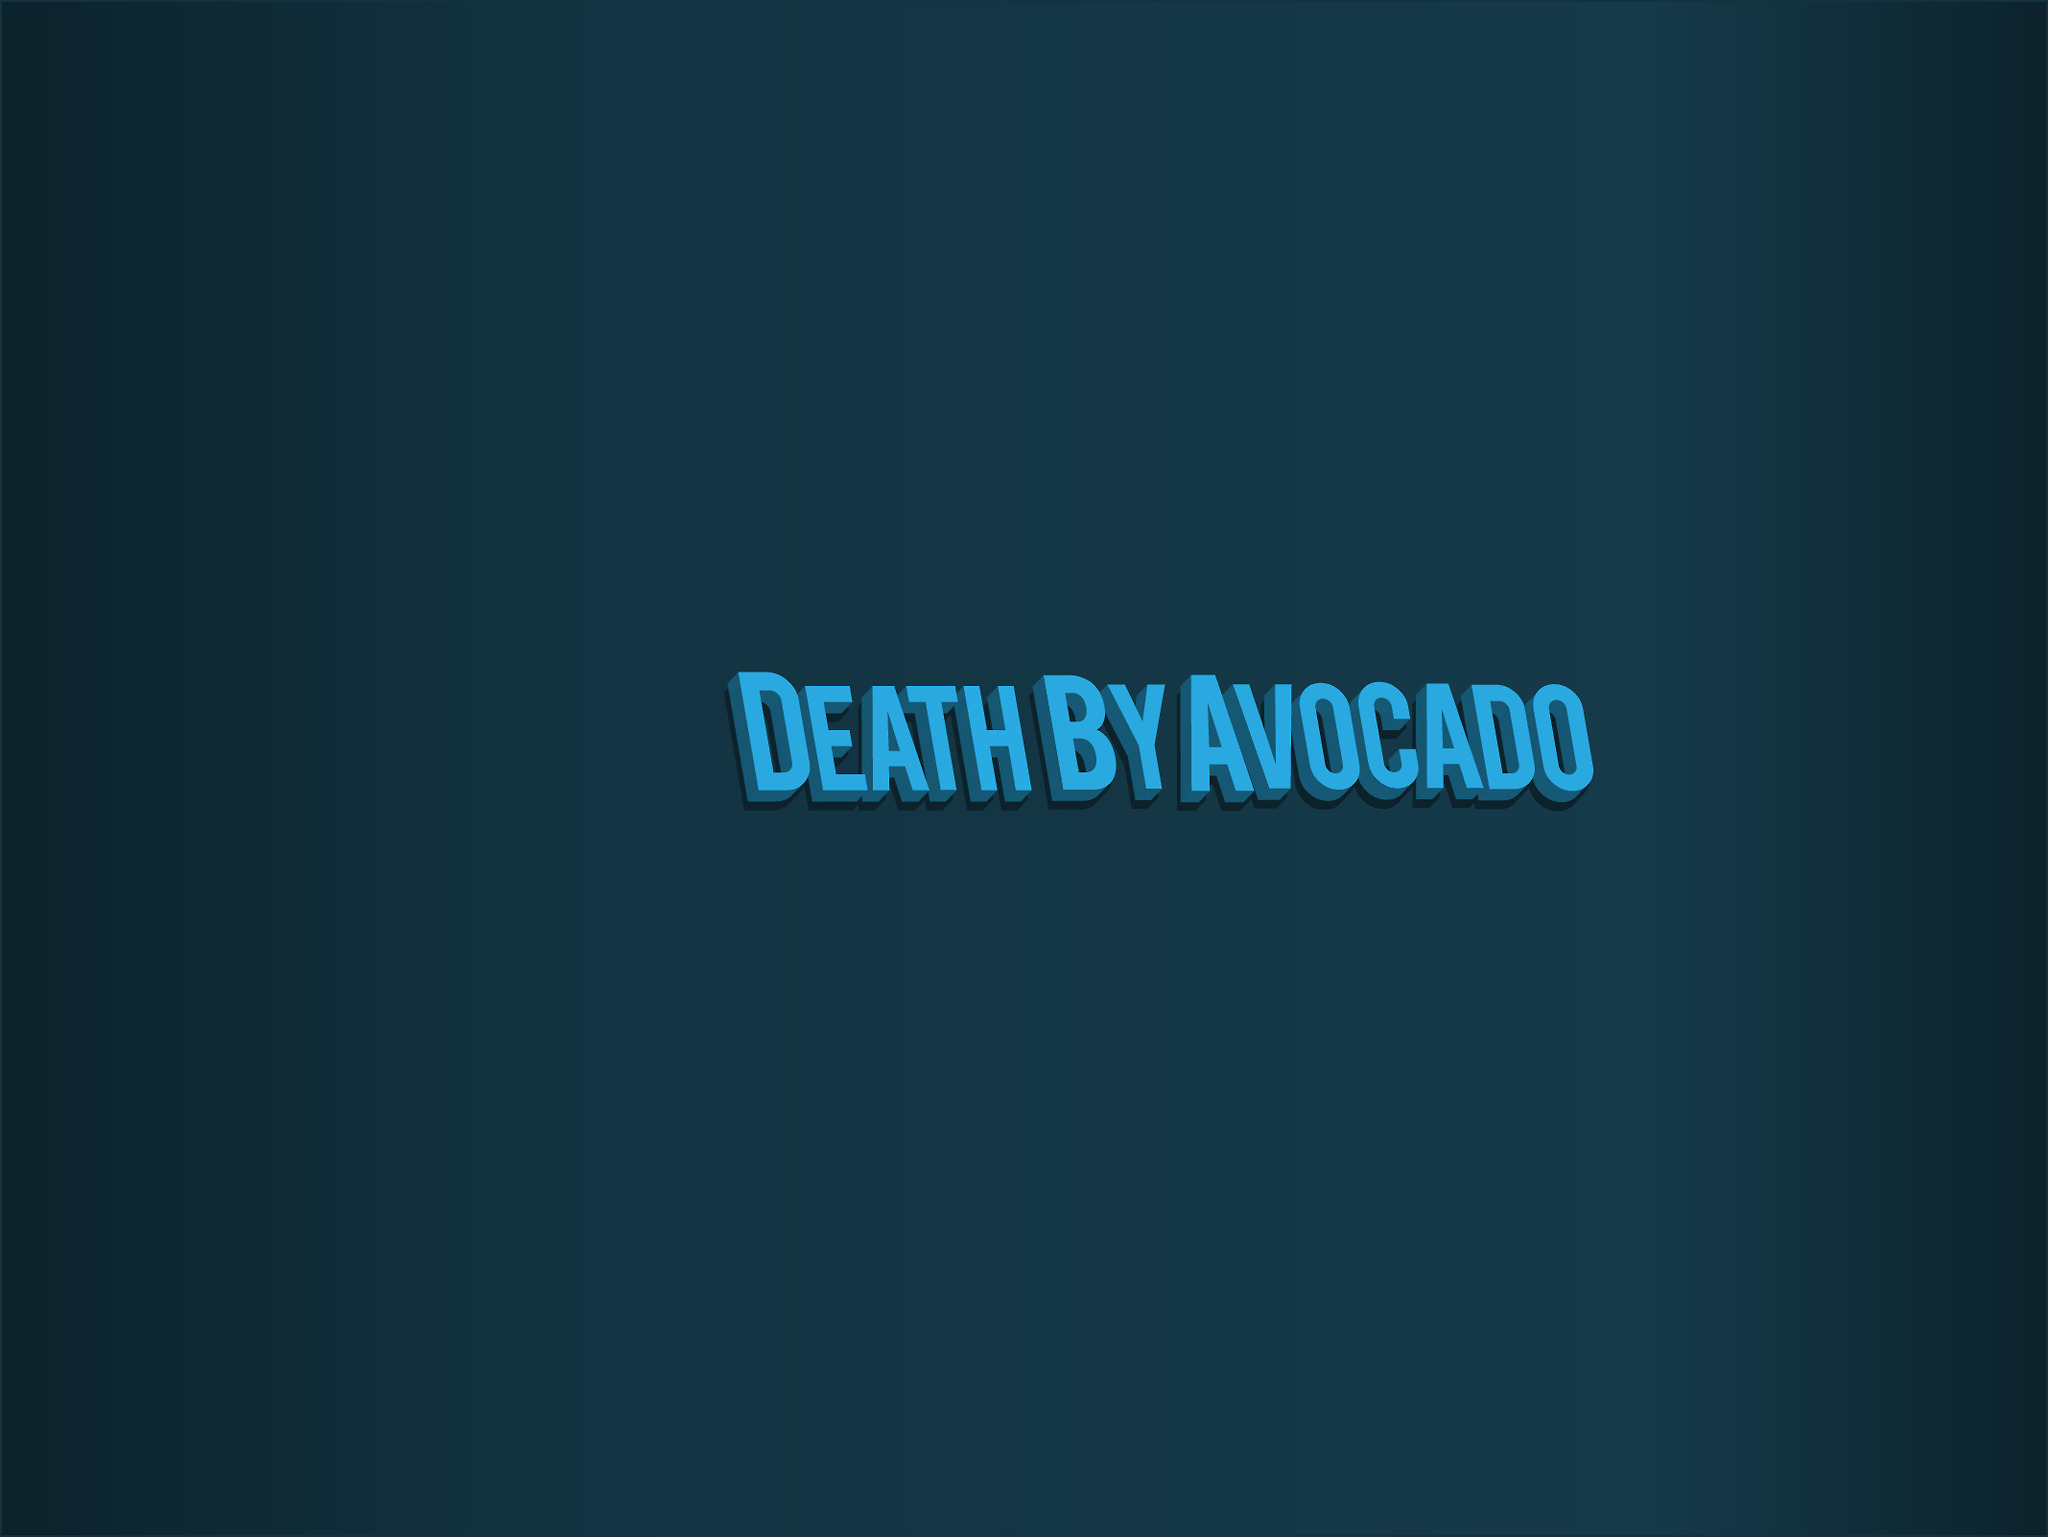 Death By Avocado